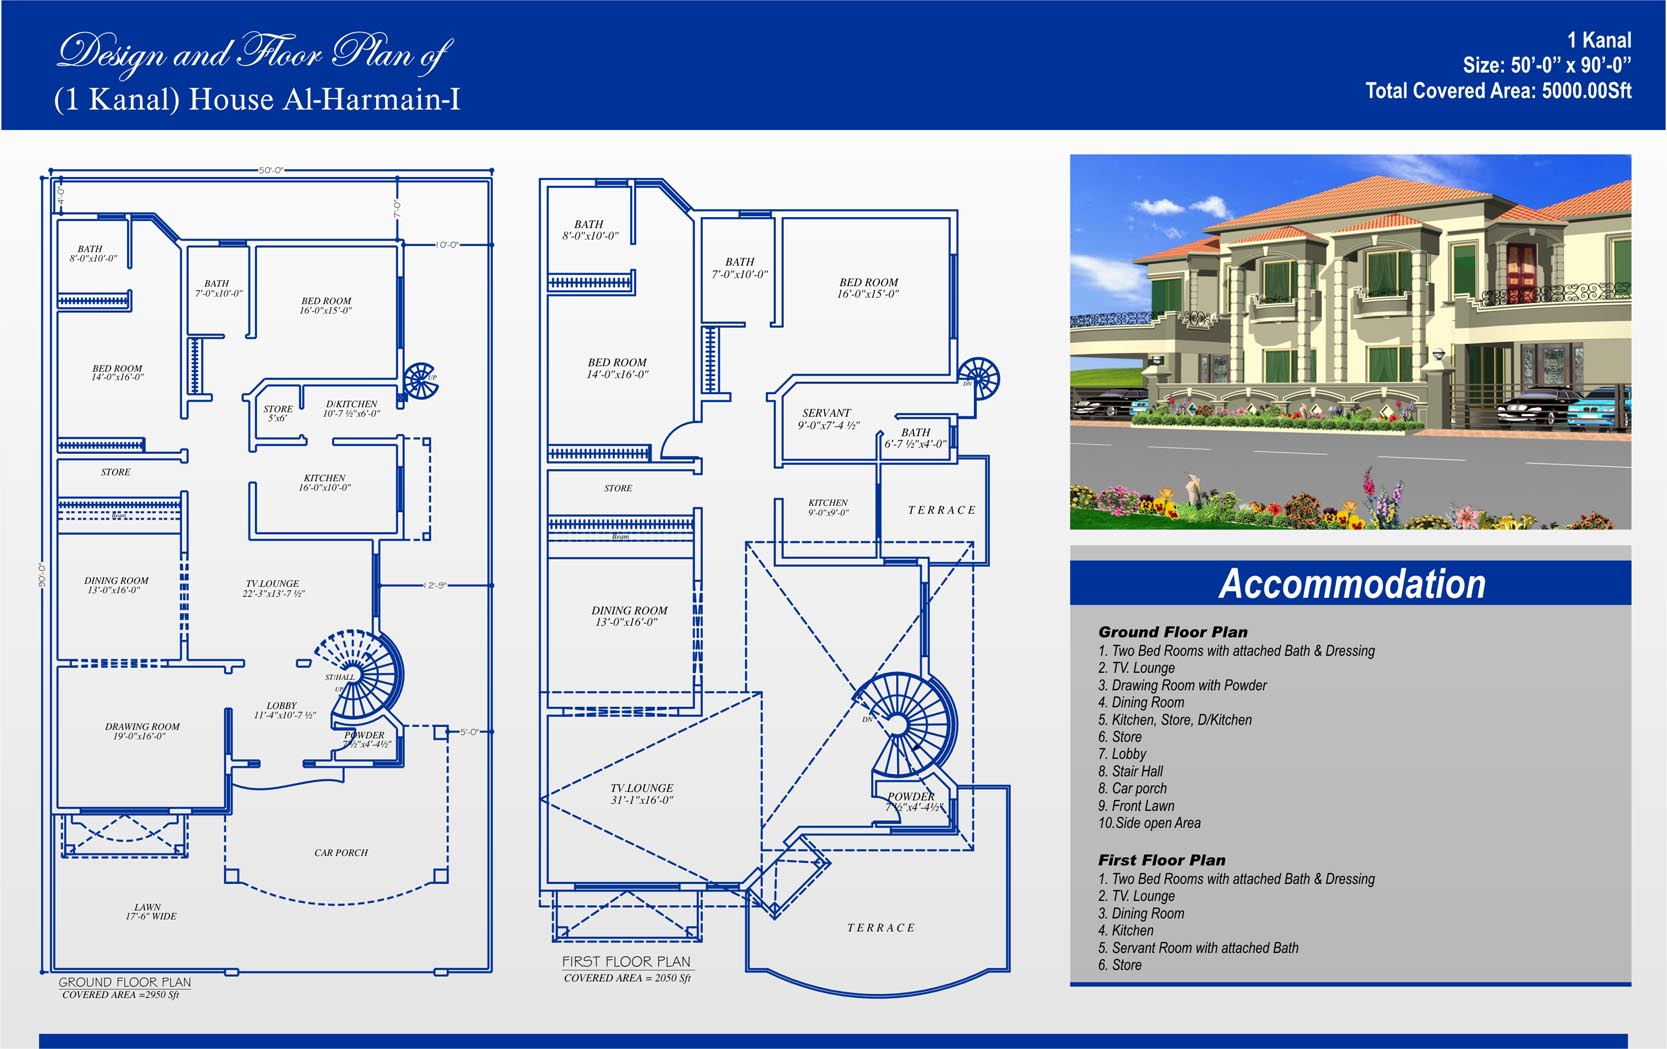 1 kanal house plans civil engineers pk House map online free